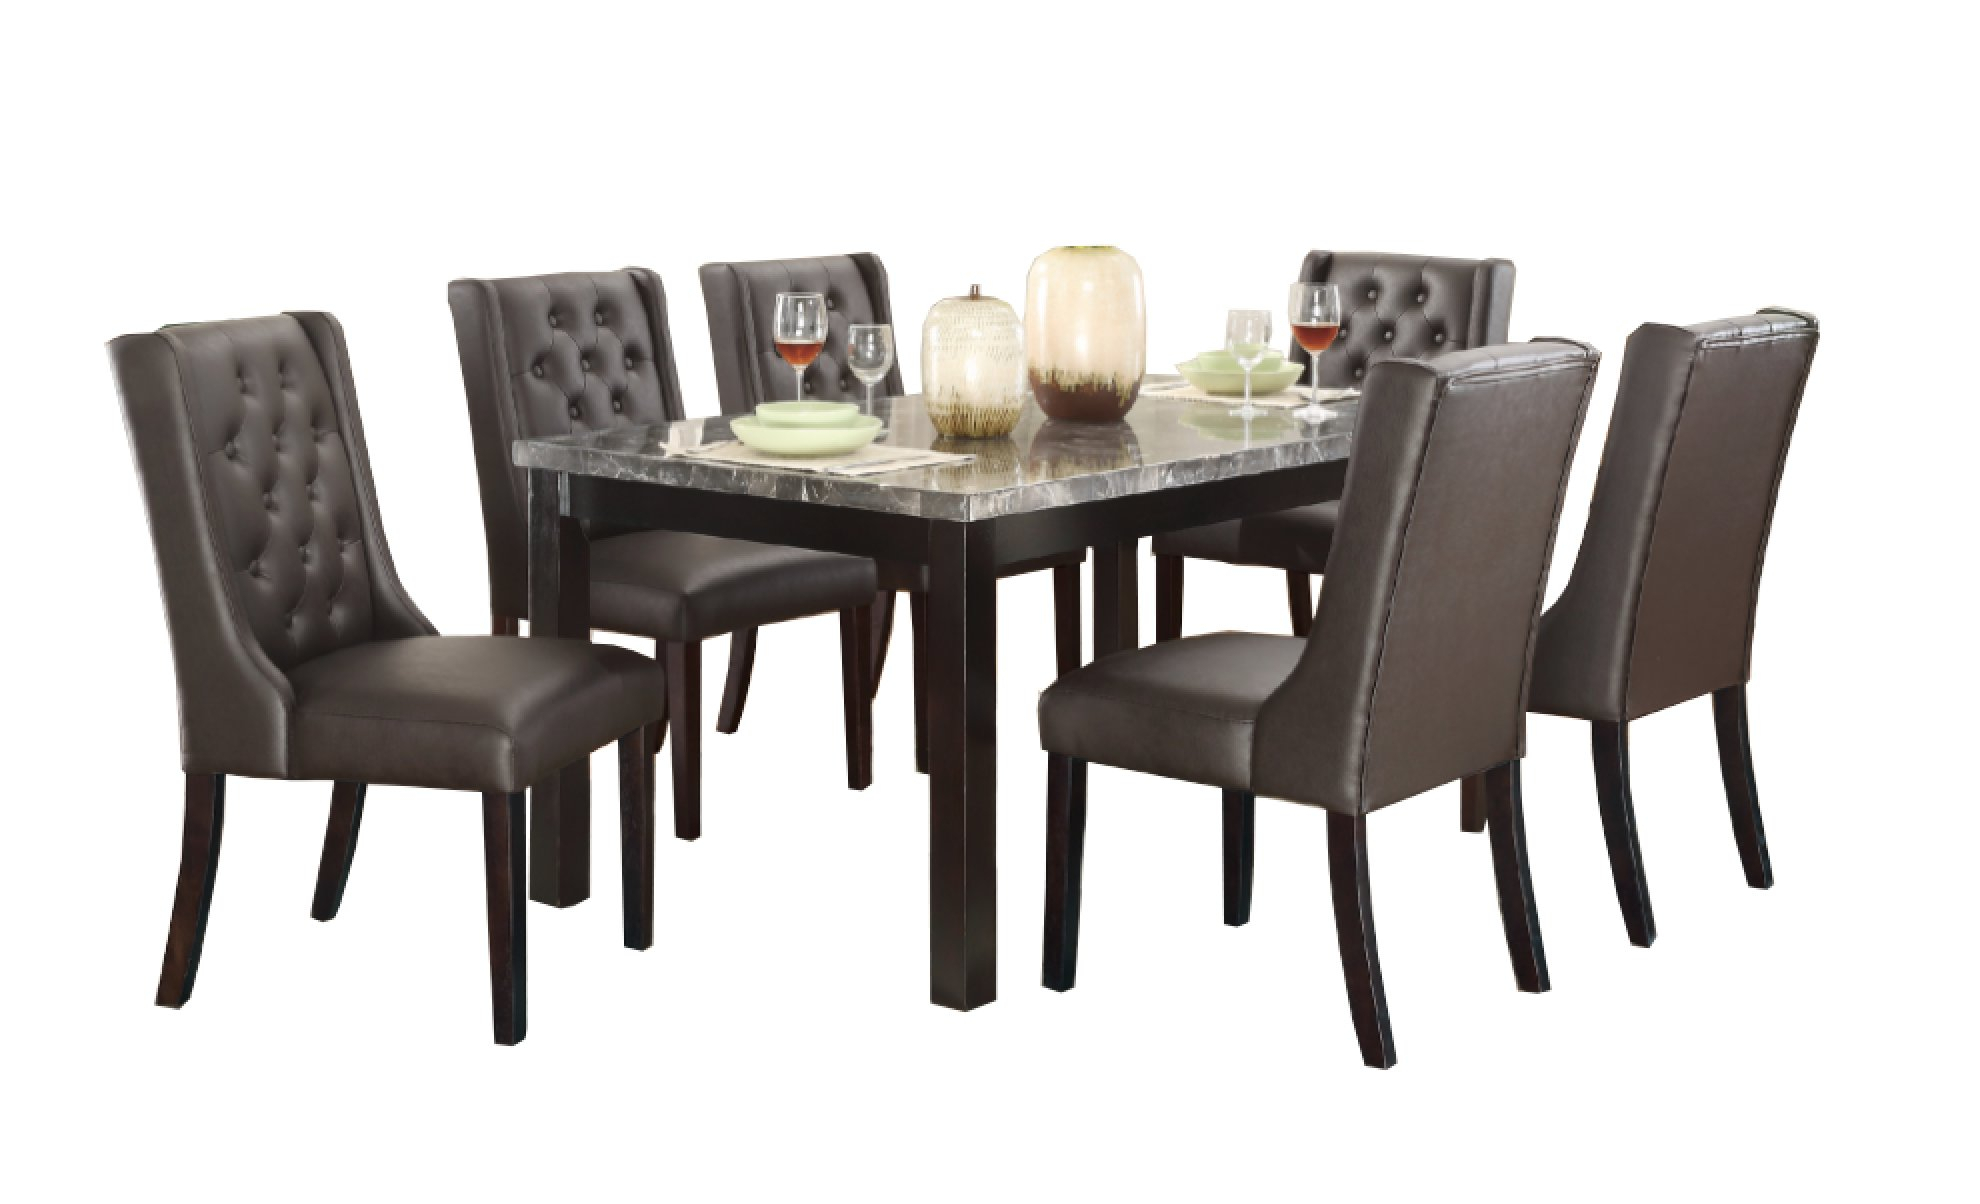 Haigh 7 Piece Dining Set Inside Current Laconia 7 Pieces Solid Wood Dining Sets (Set Of 7) (View 18 of 20)